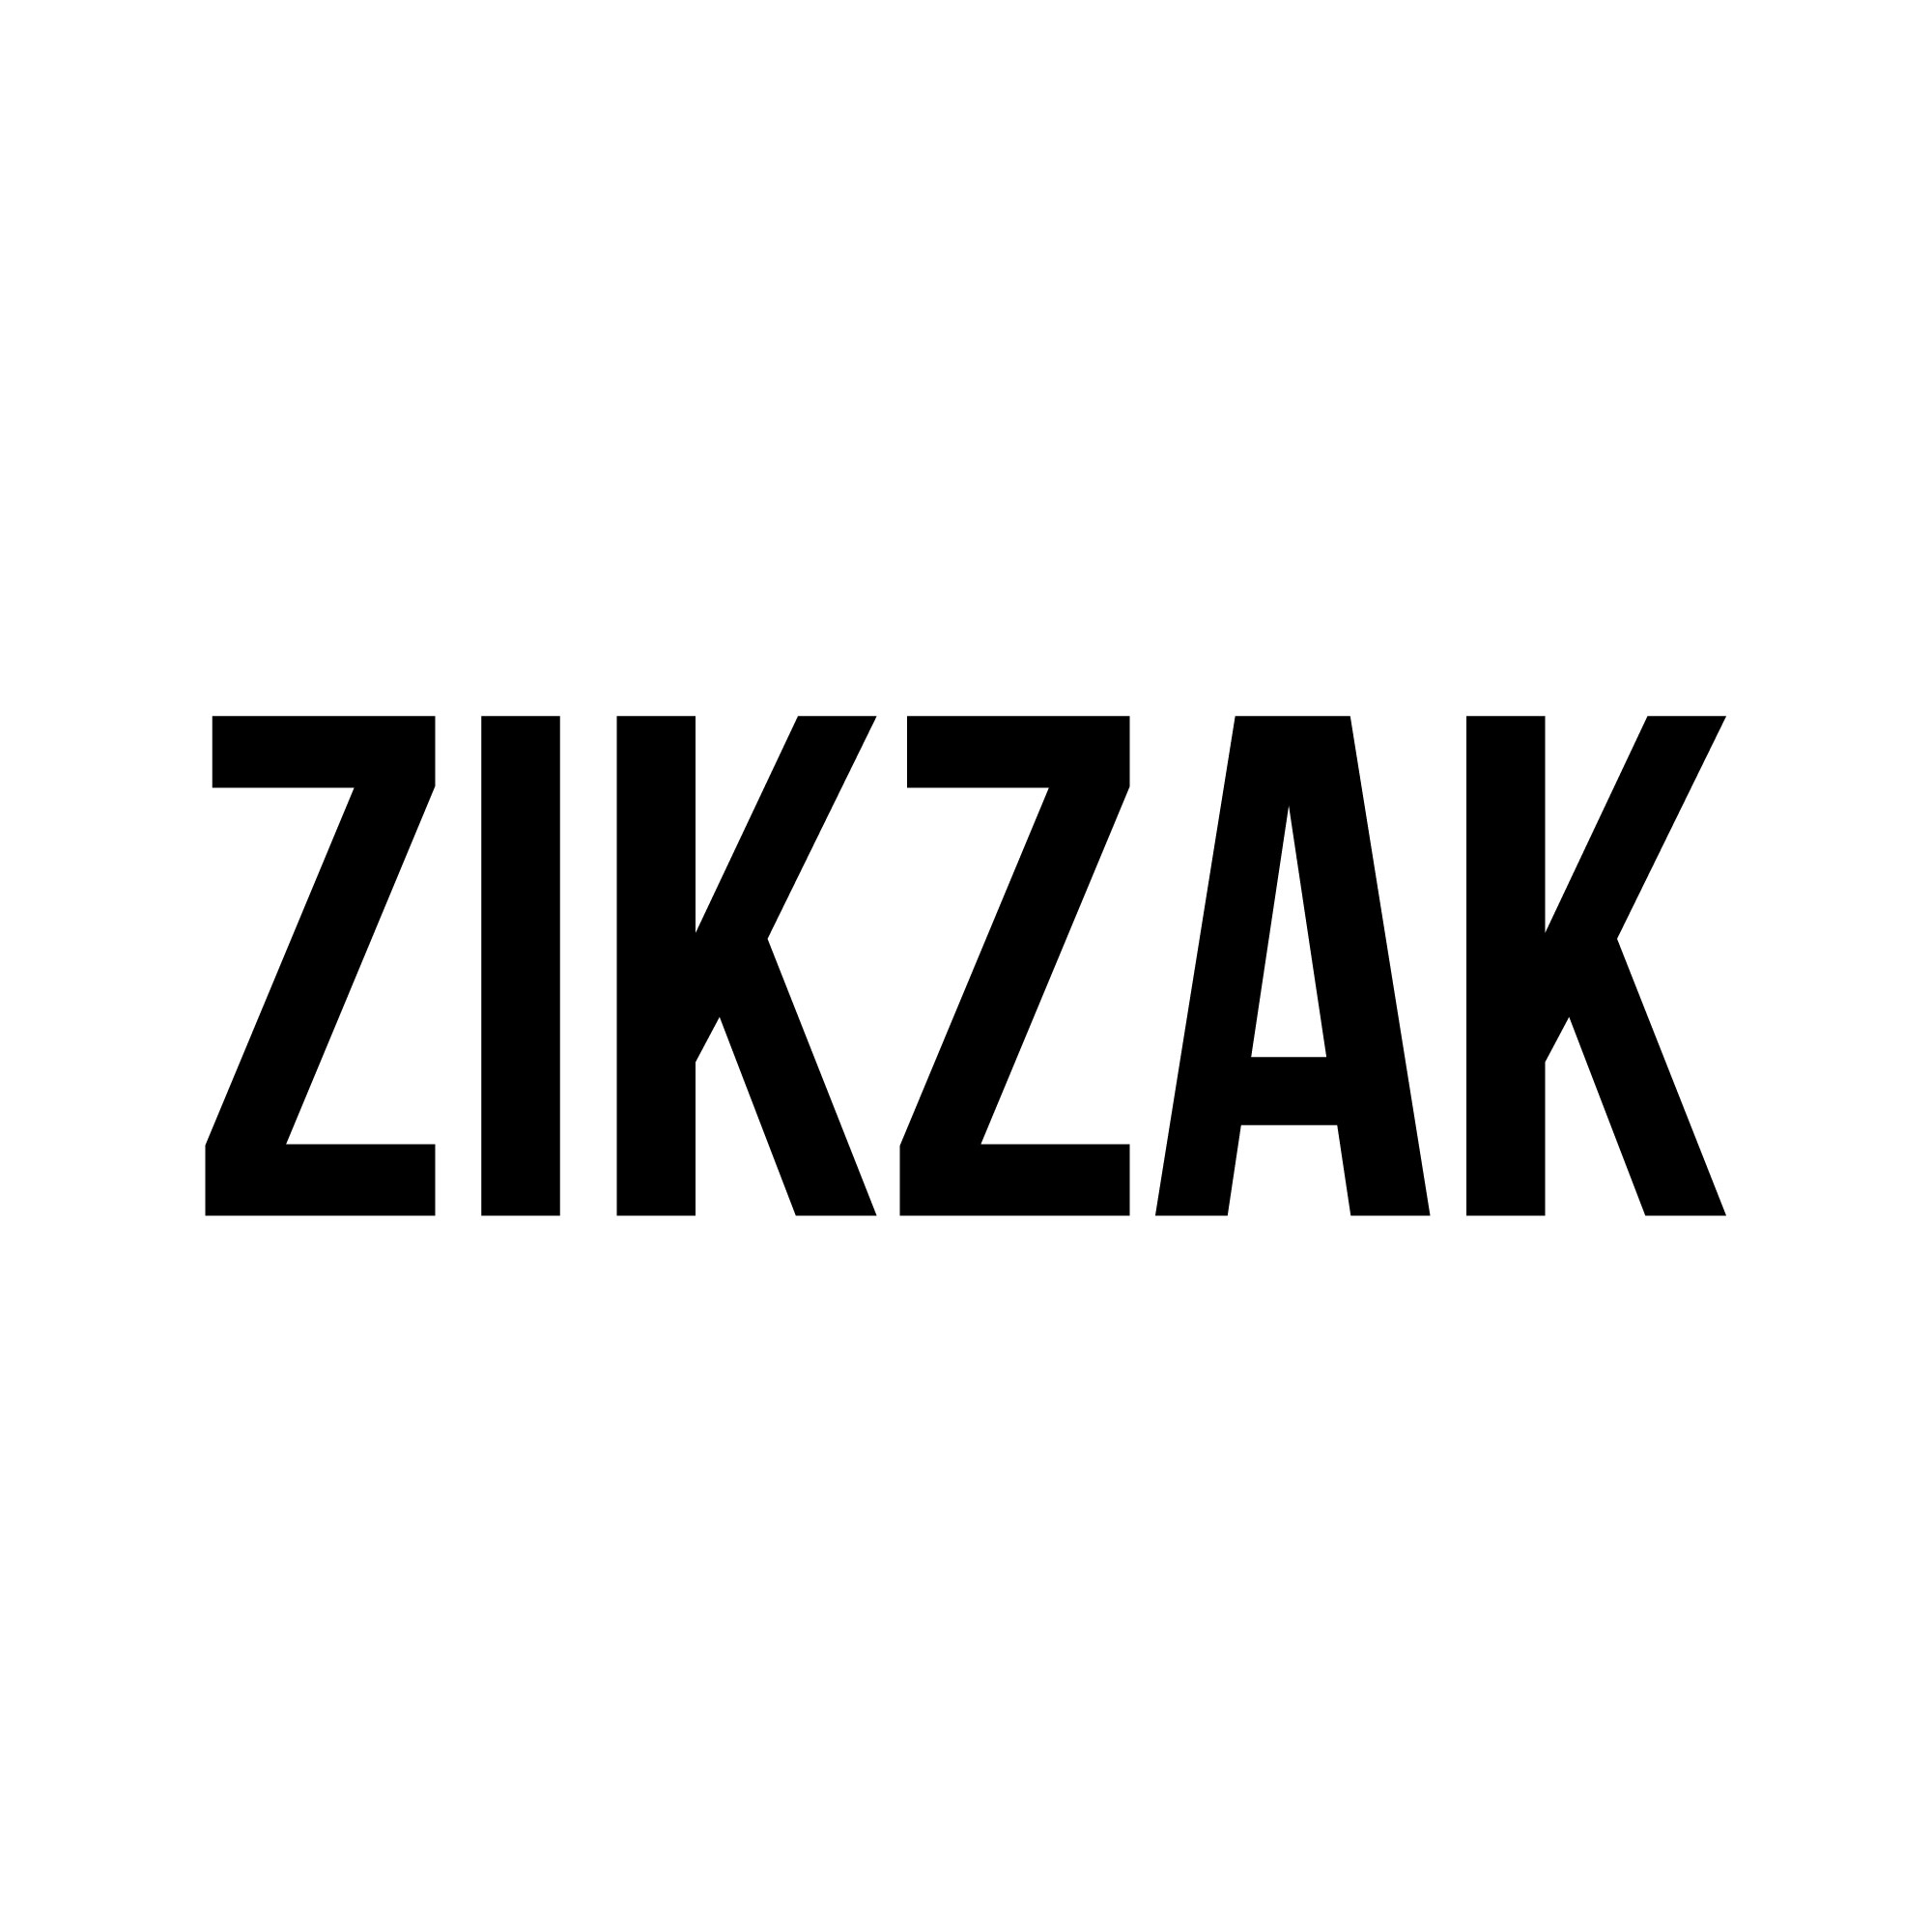 Zikzak architects